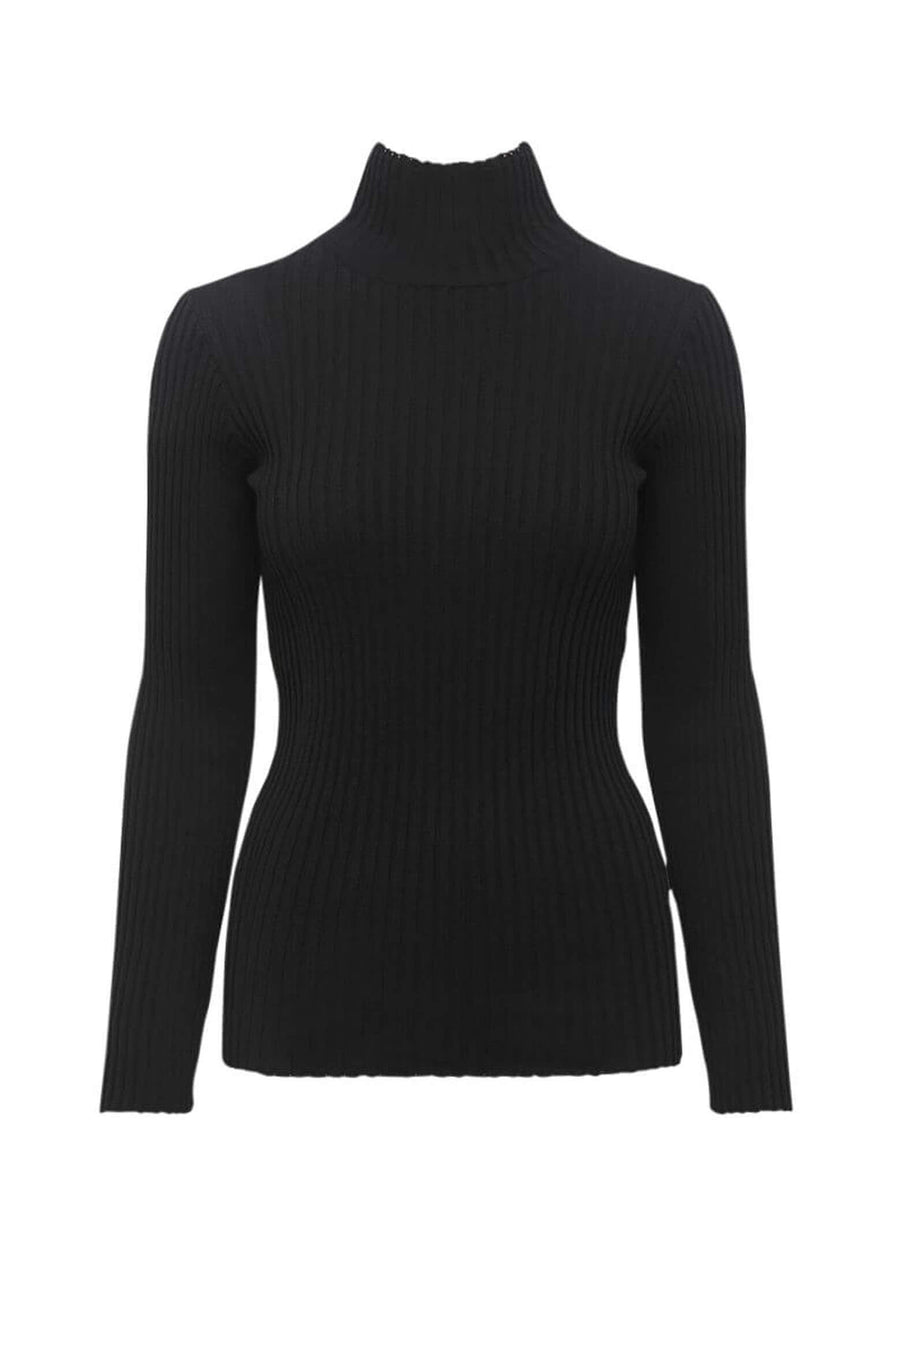 Anine Bing Clare Top in Black available at The New Trend